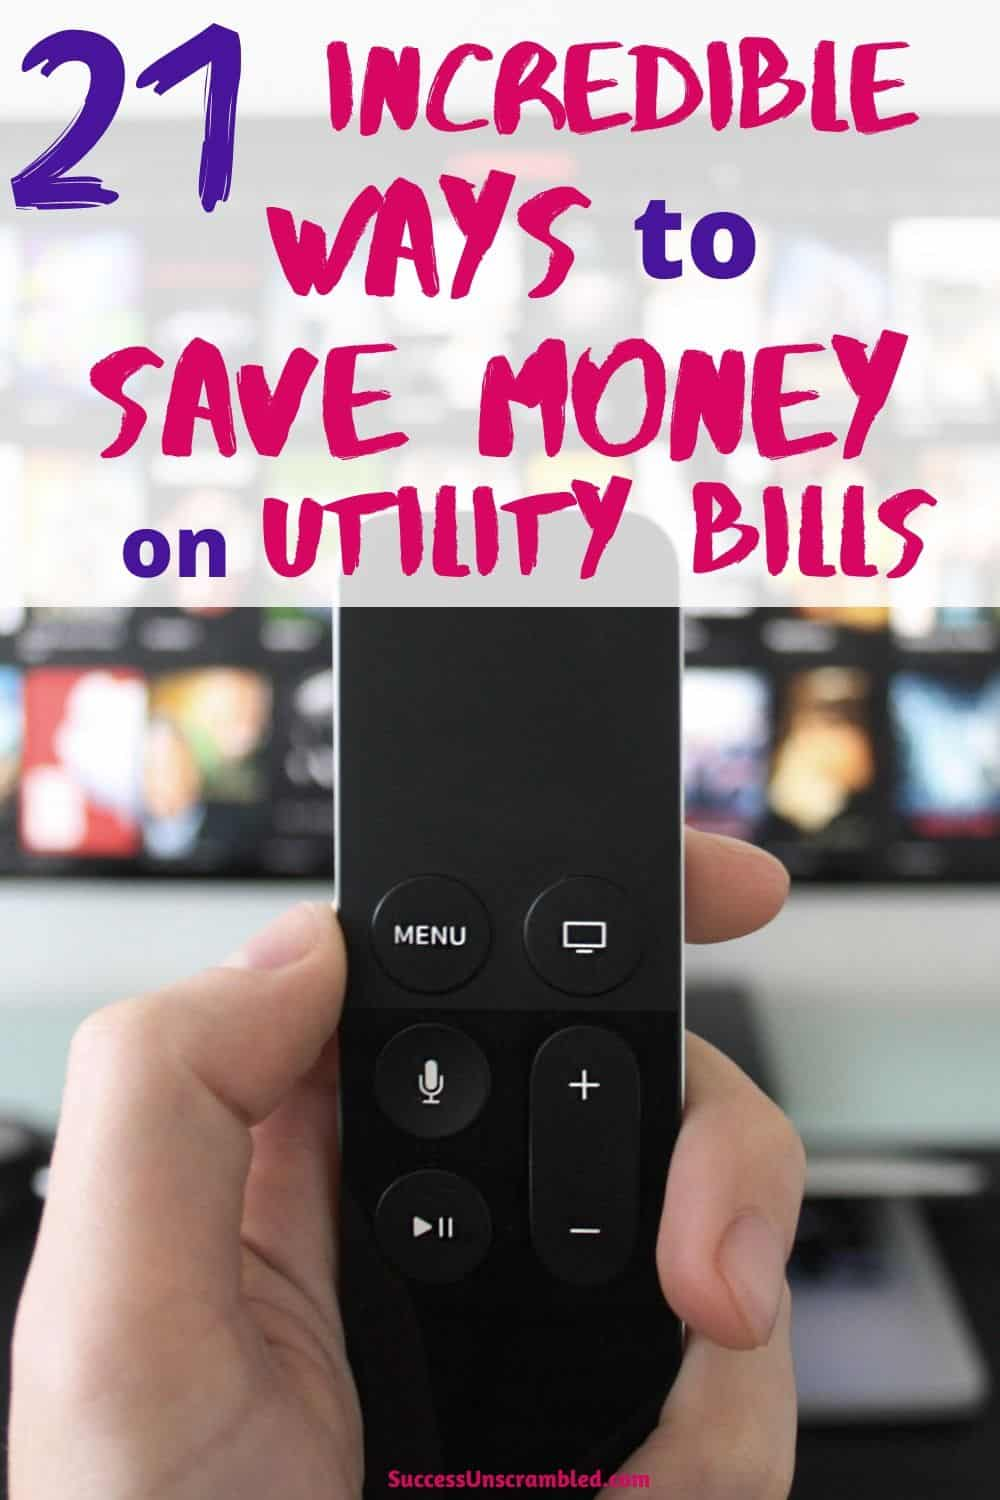 Save money on electric bills, save money on heating, save money on utility bills, save money on cable - pin 2